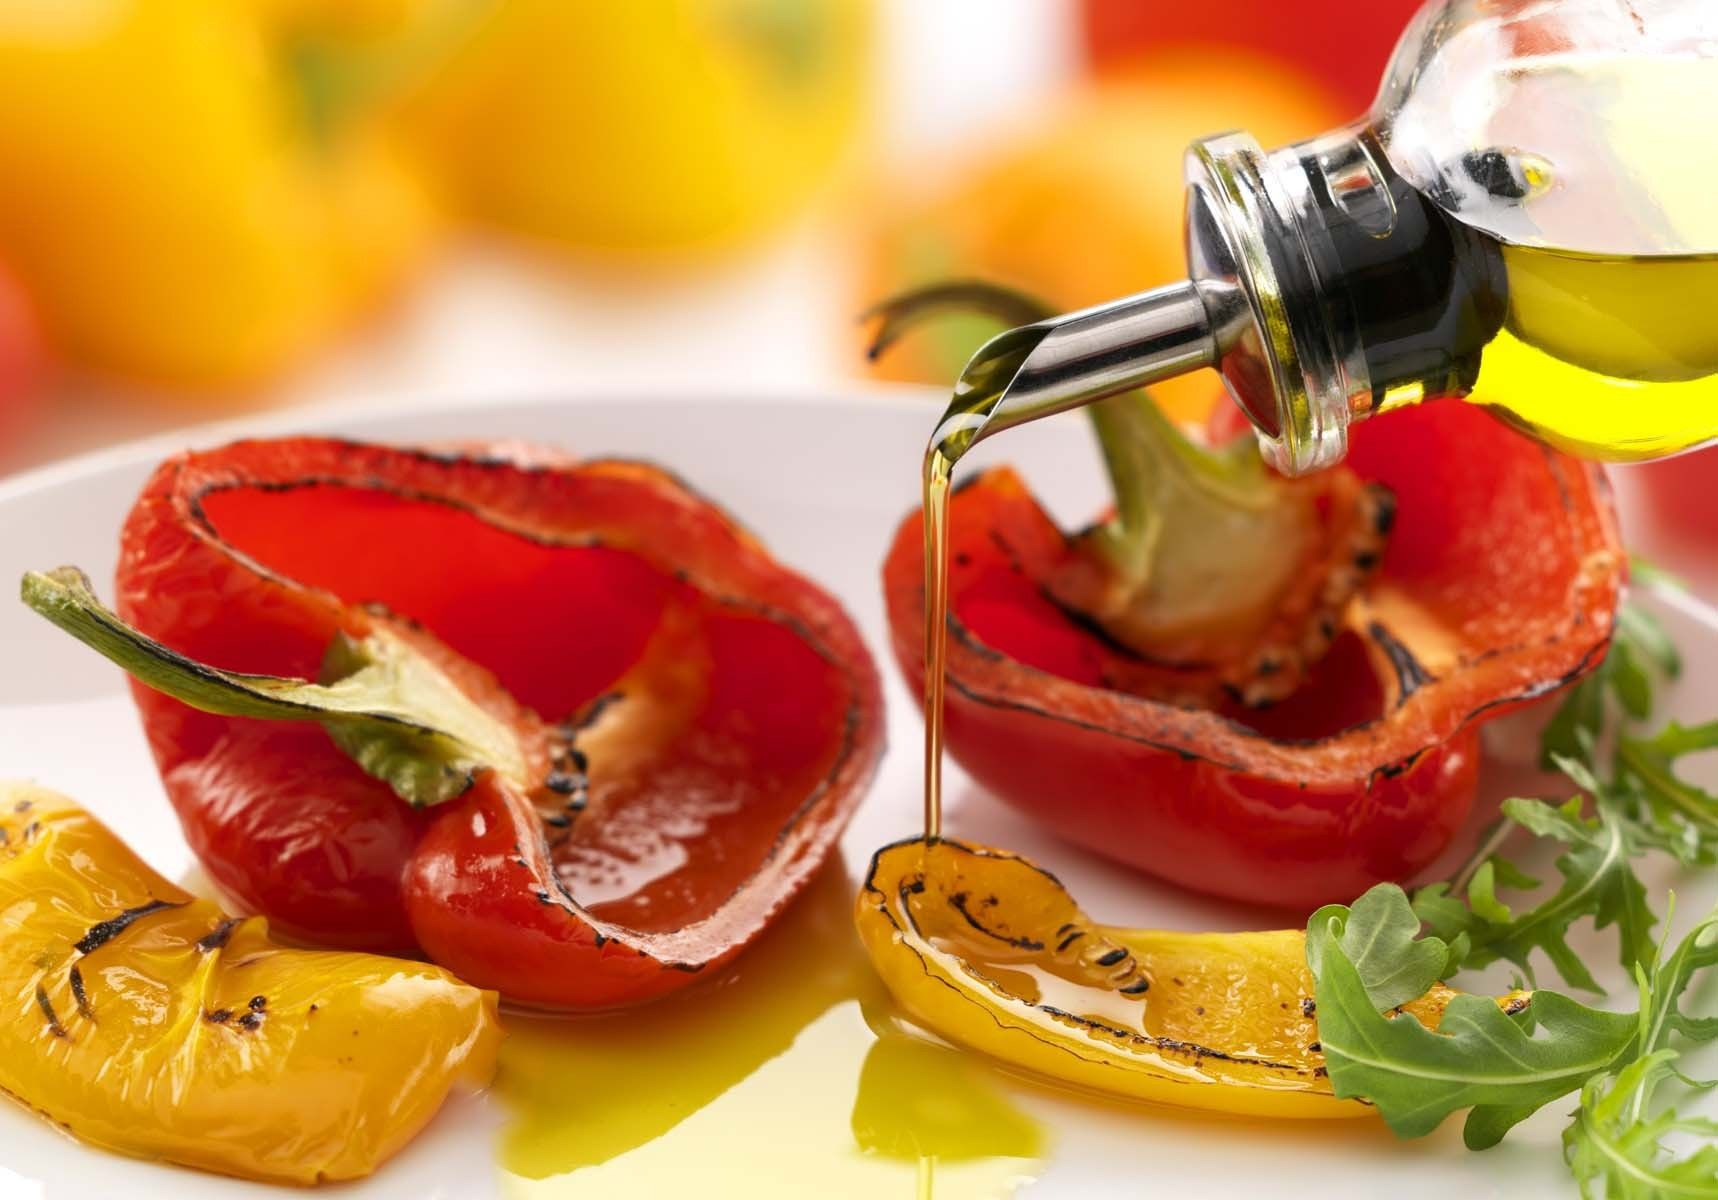 Roast Peppers drizzled with Olive Oil.